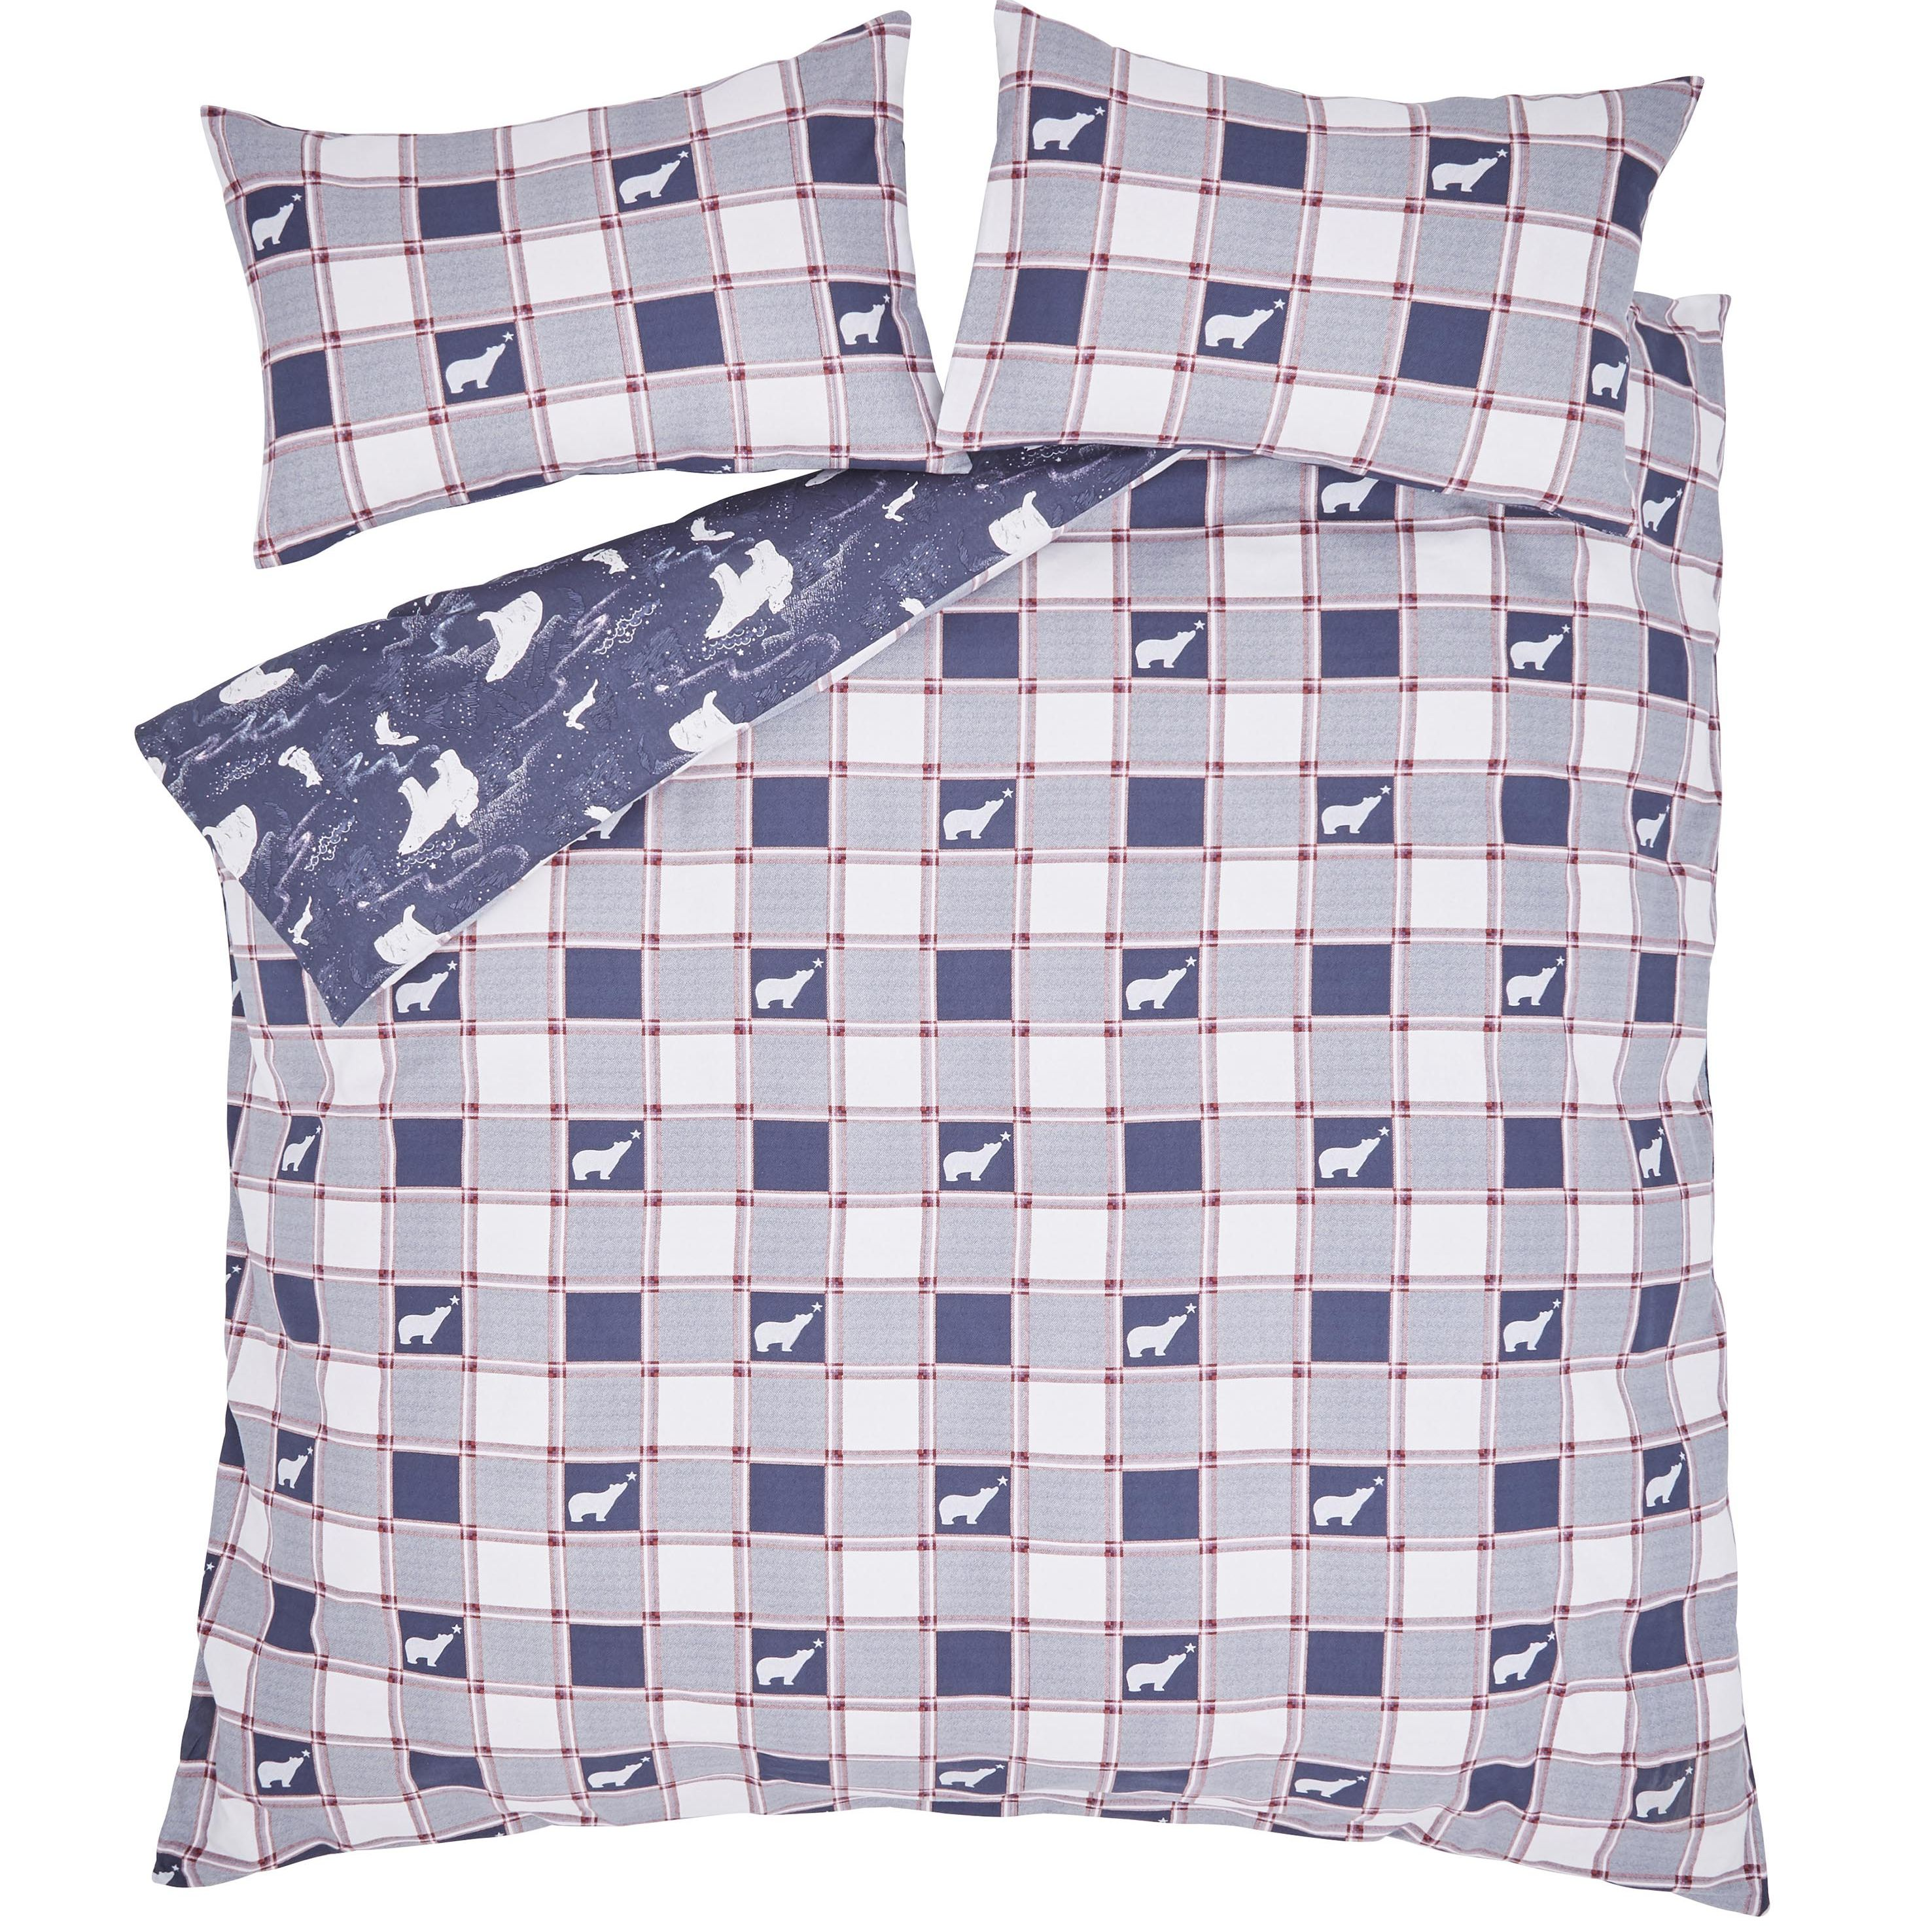 XMAS POLAR BEAR DOUBLE QUILT SET - NAVY